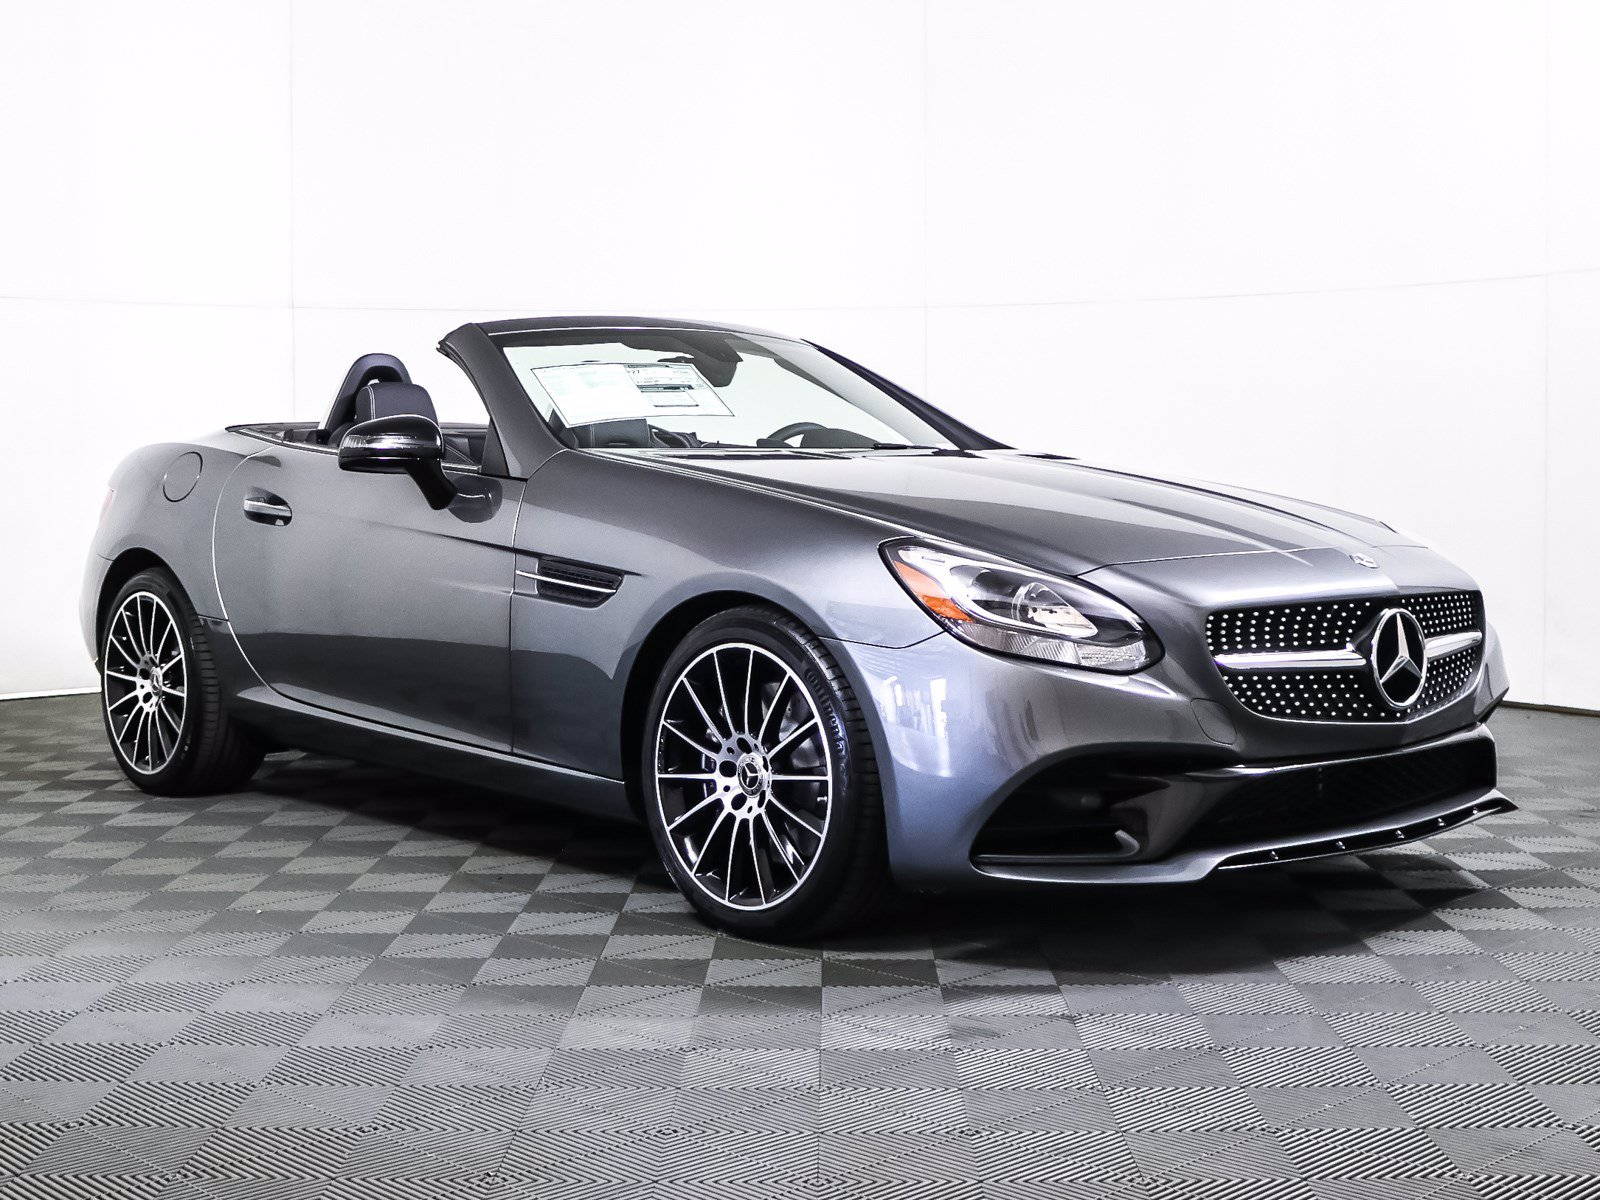 New 2020 Mercedes-Benz SLC 300 Roadster